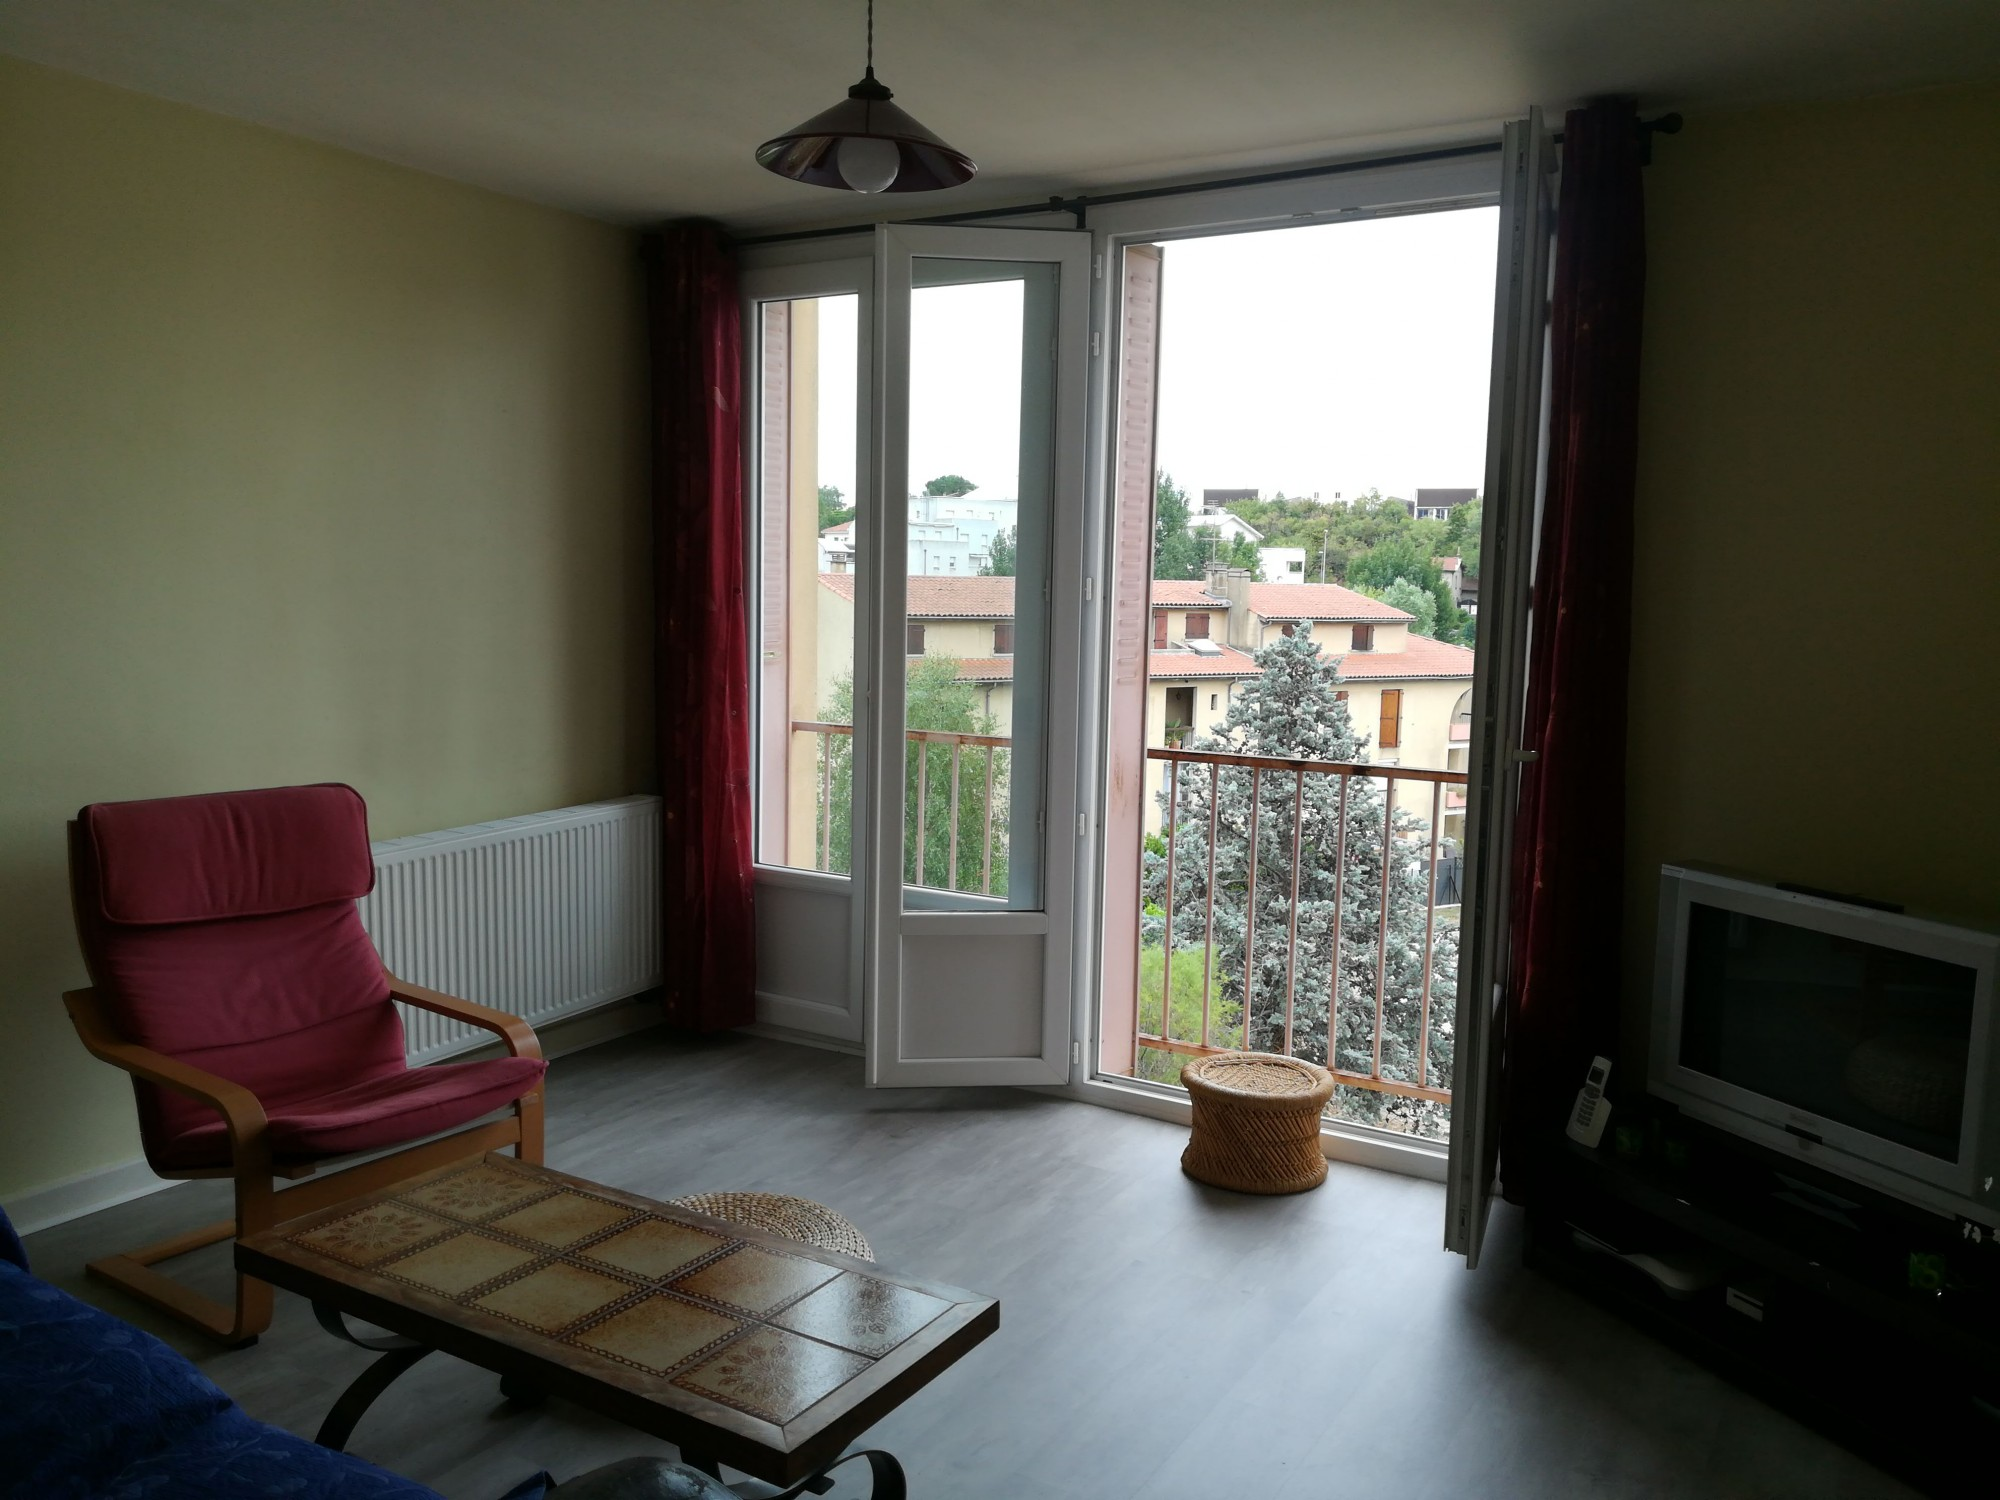 LOCATION APPART CHATEAUVERT VALENCE 26000